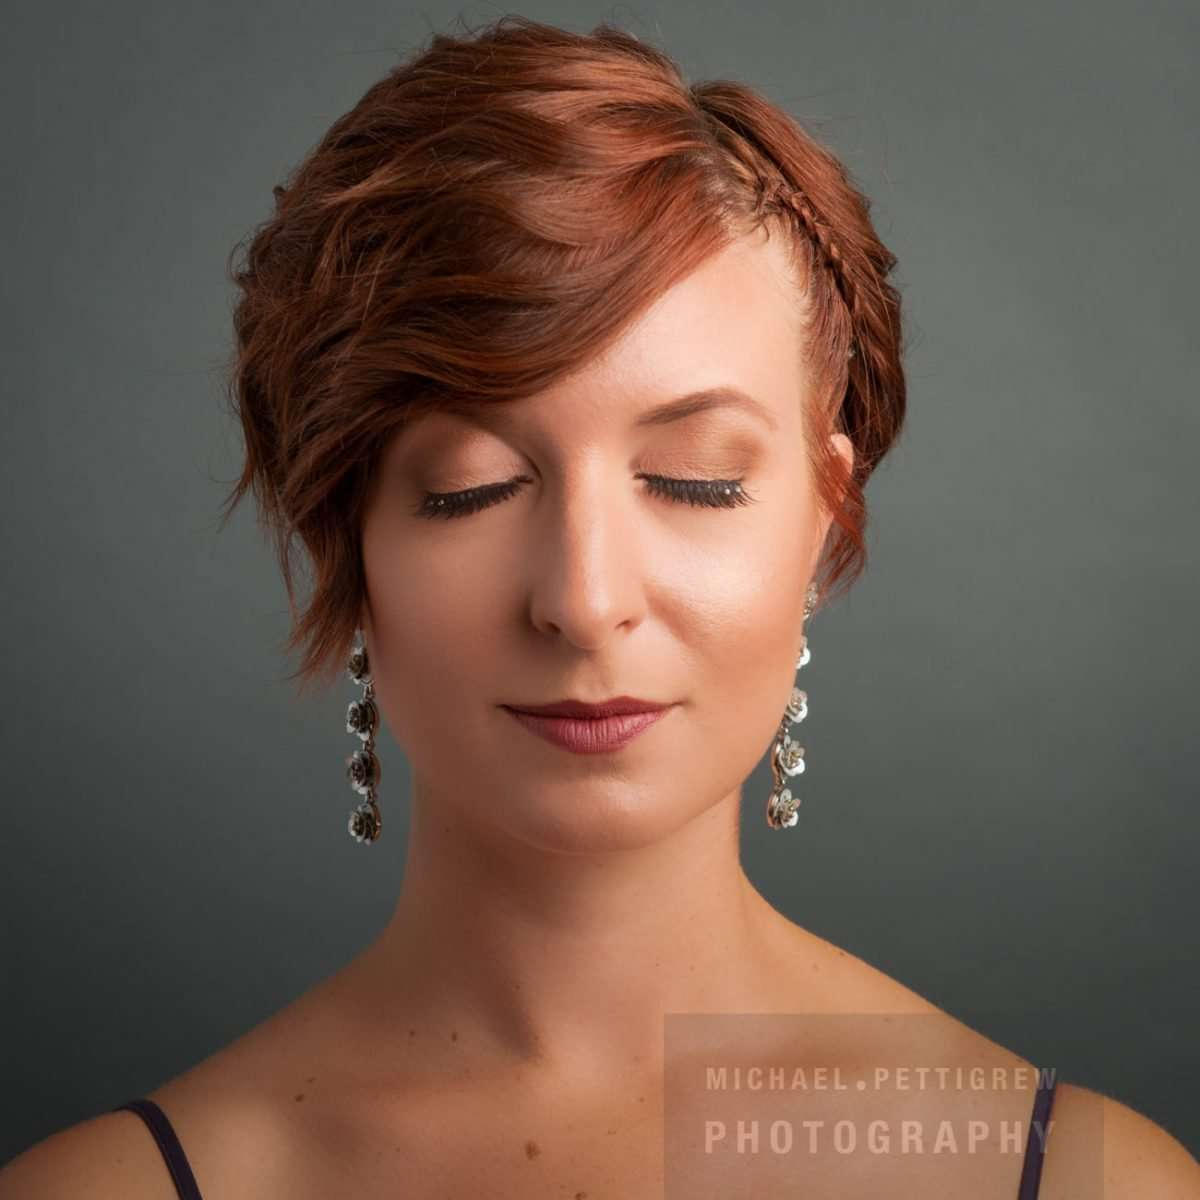 hair salon professional photography of woman's hair and makeup